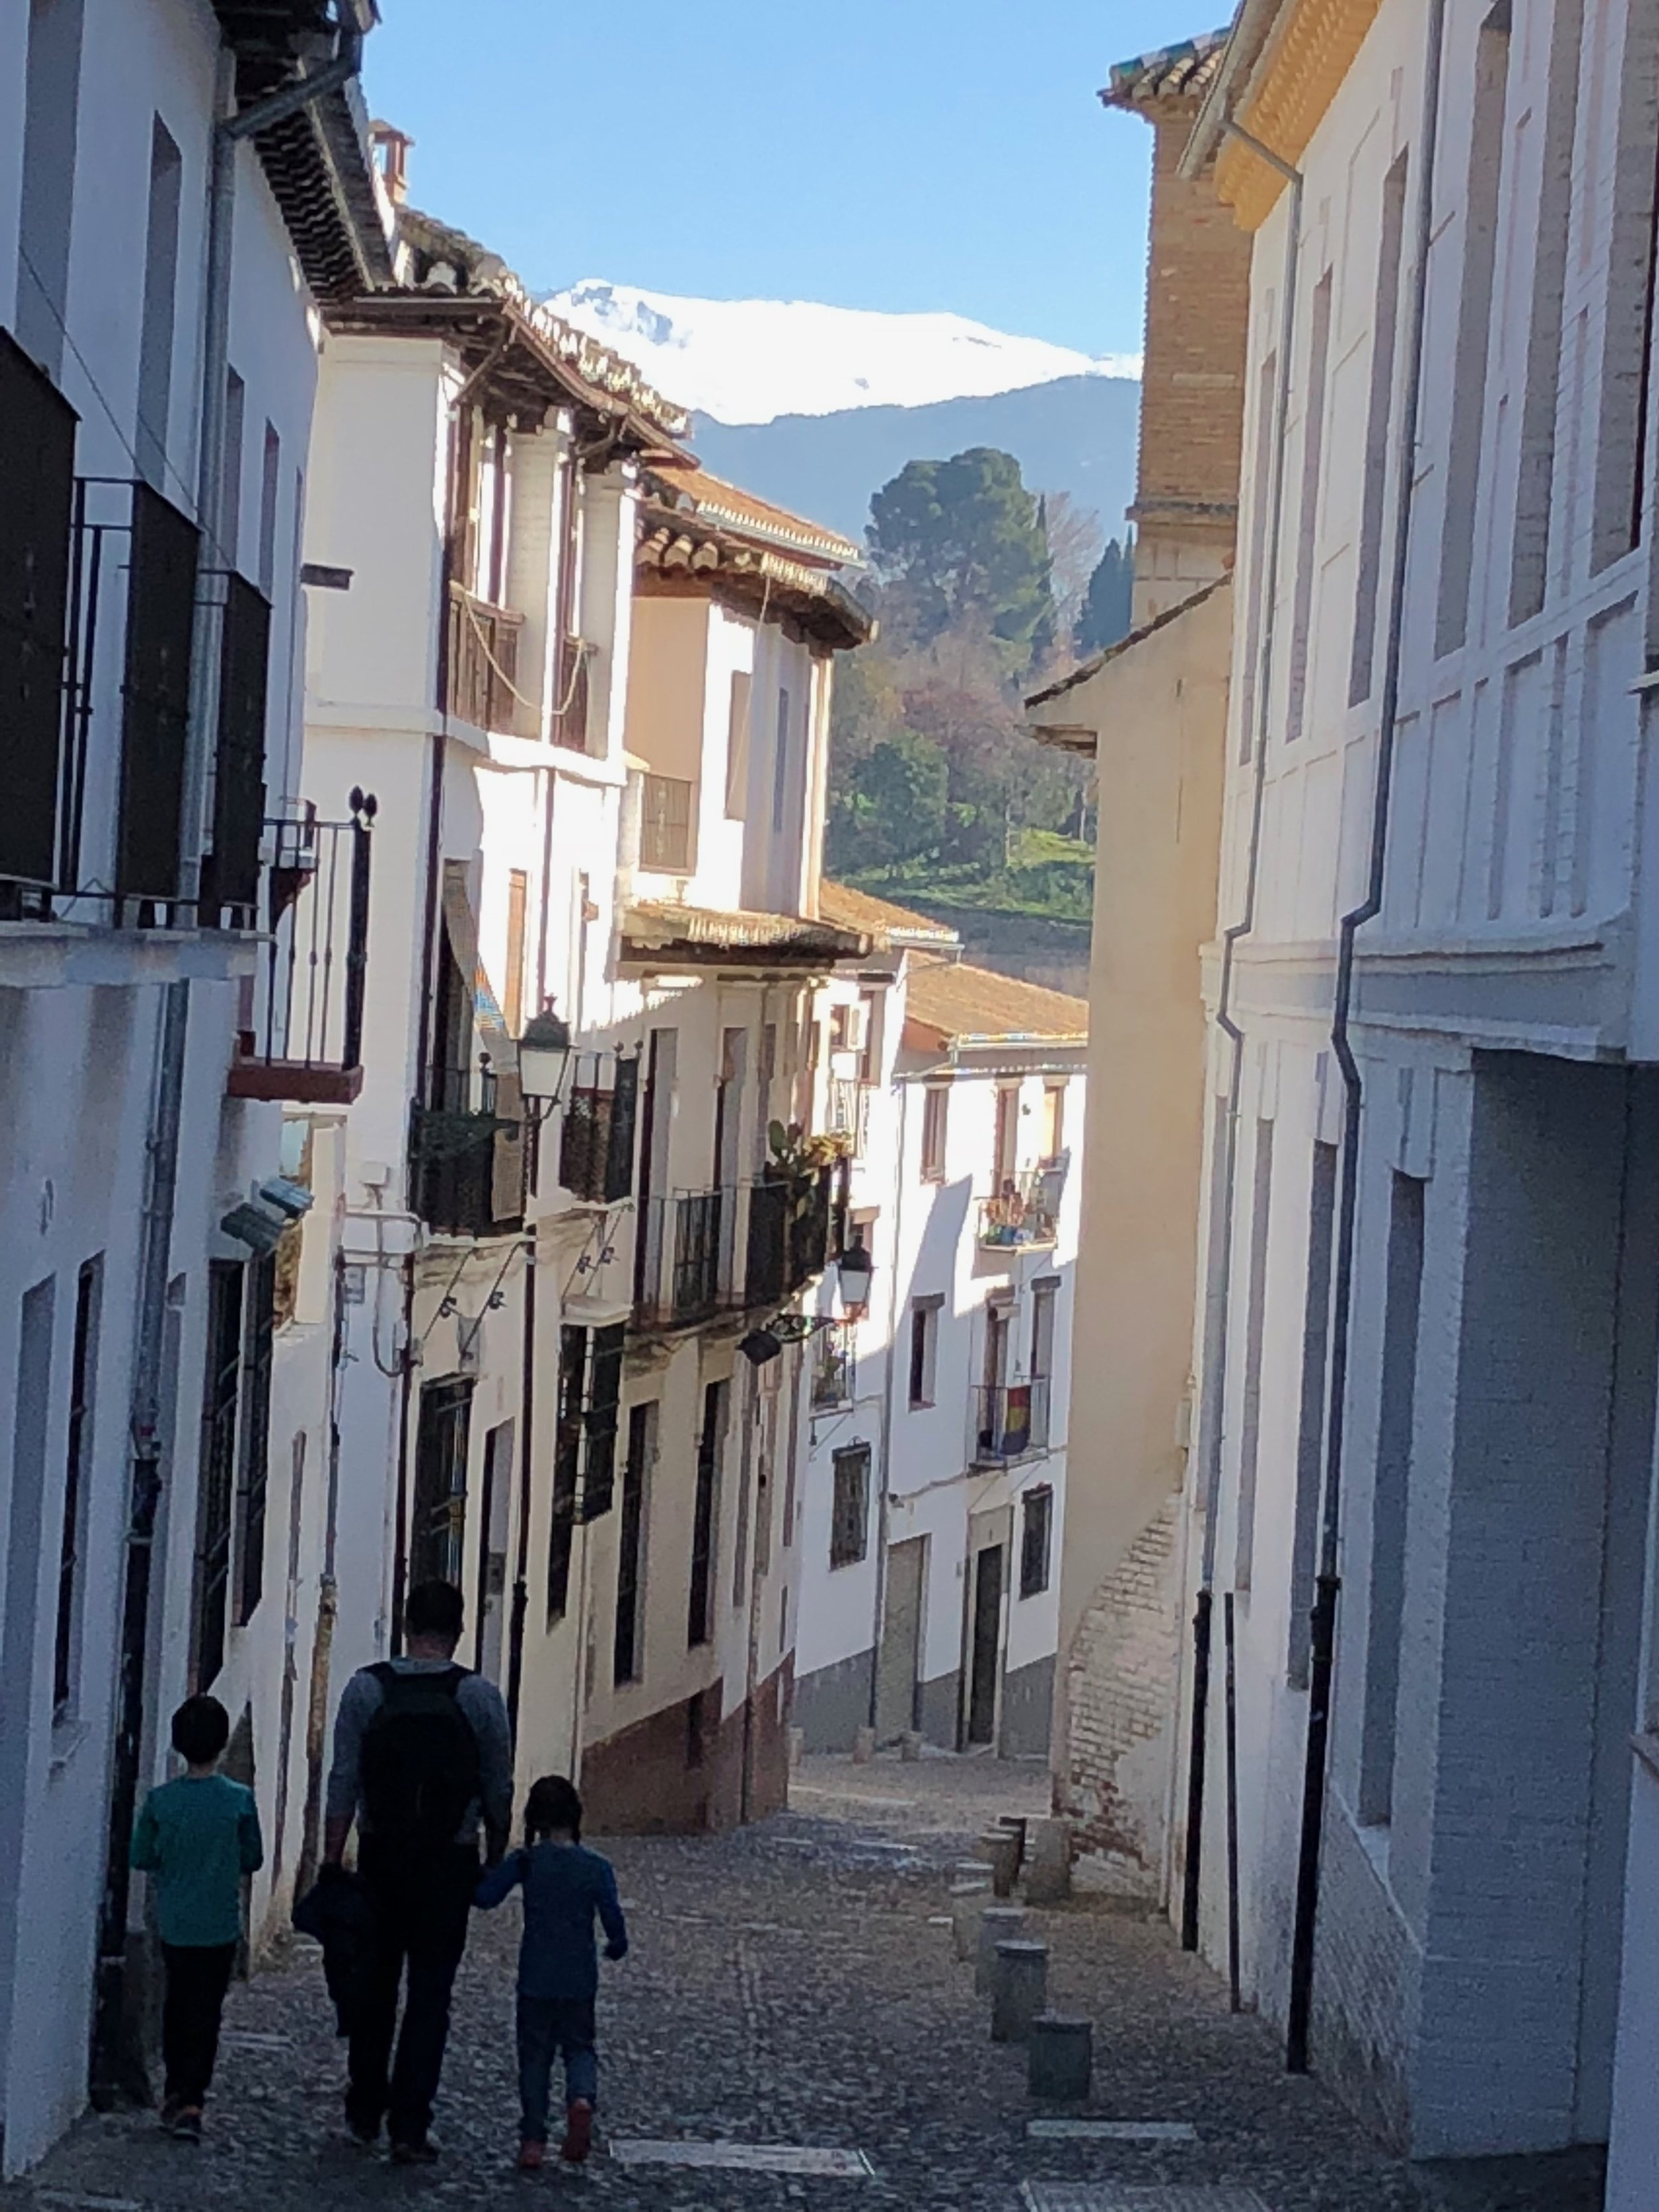 A stroll through the cobbled streets of Granada after our language class with the blue winter sky above and Sierra Nevada in the distance. Perfecto.